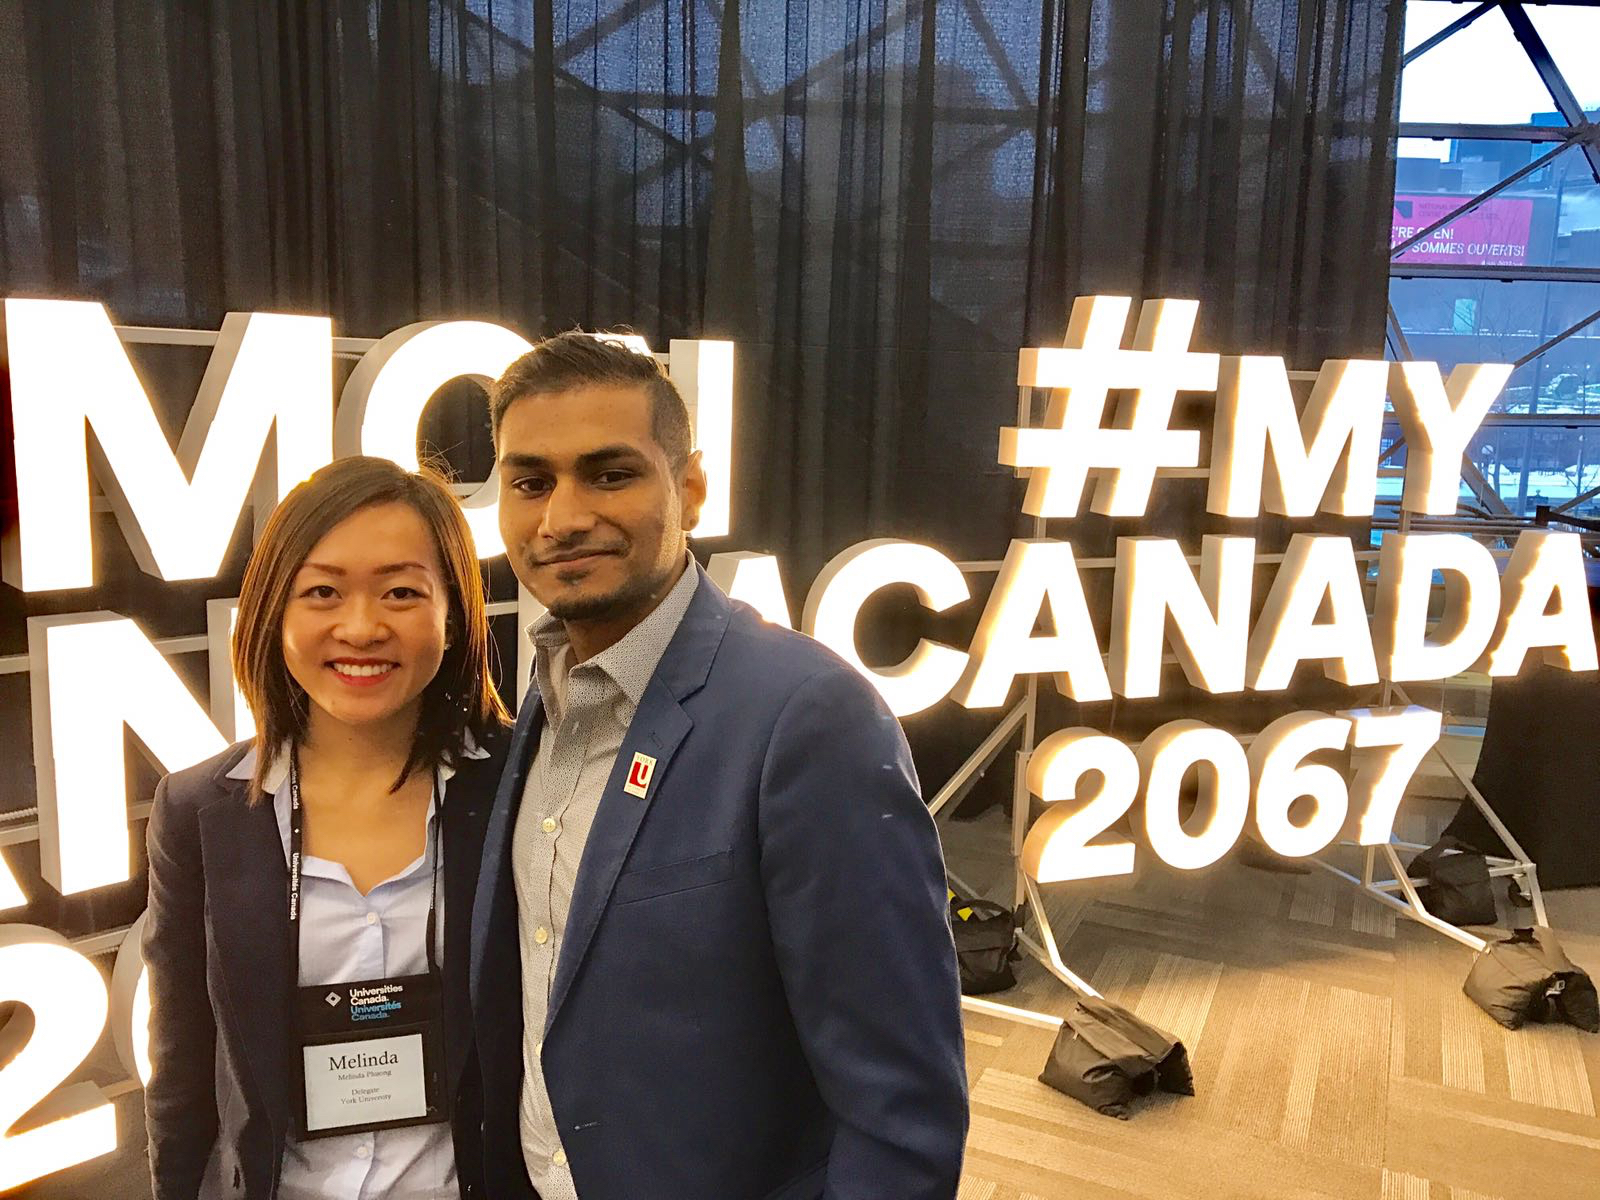 Melinda Phuong and Nishal Shah at Converge 2017.